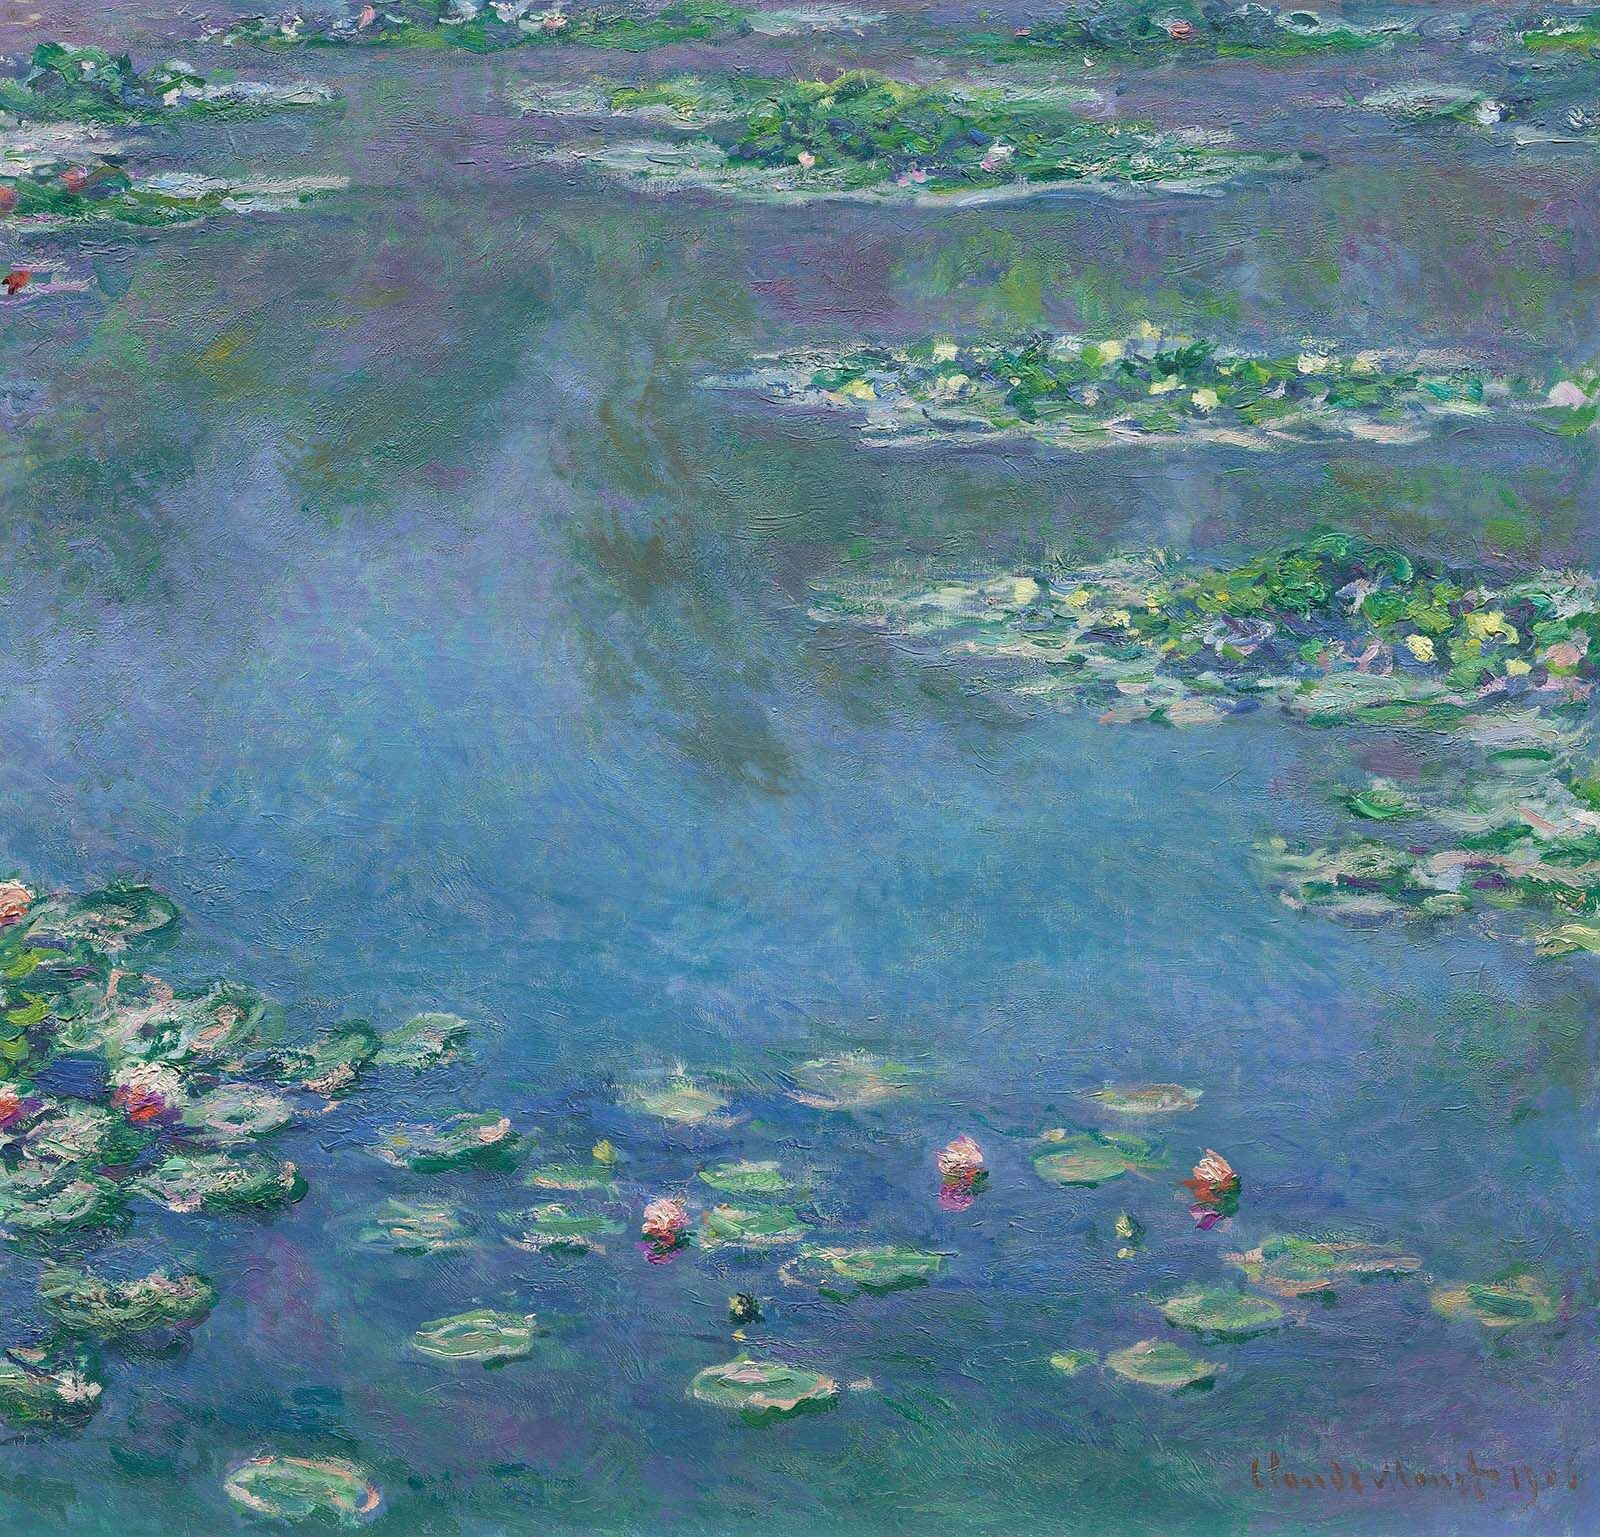 Claude Monet, Water Lilies, 1906, The Art Institute of Chicago